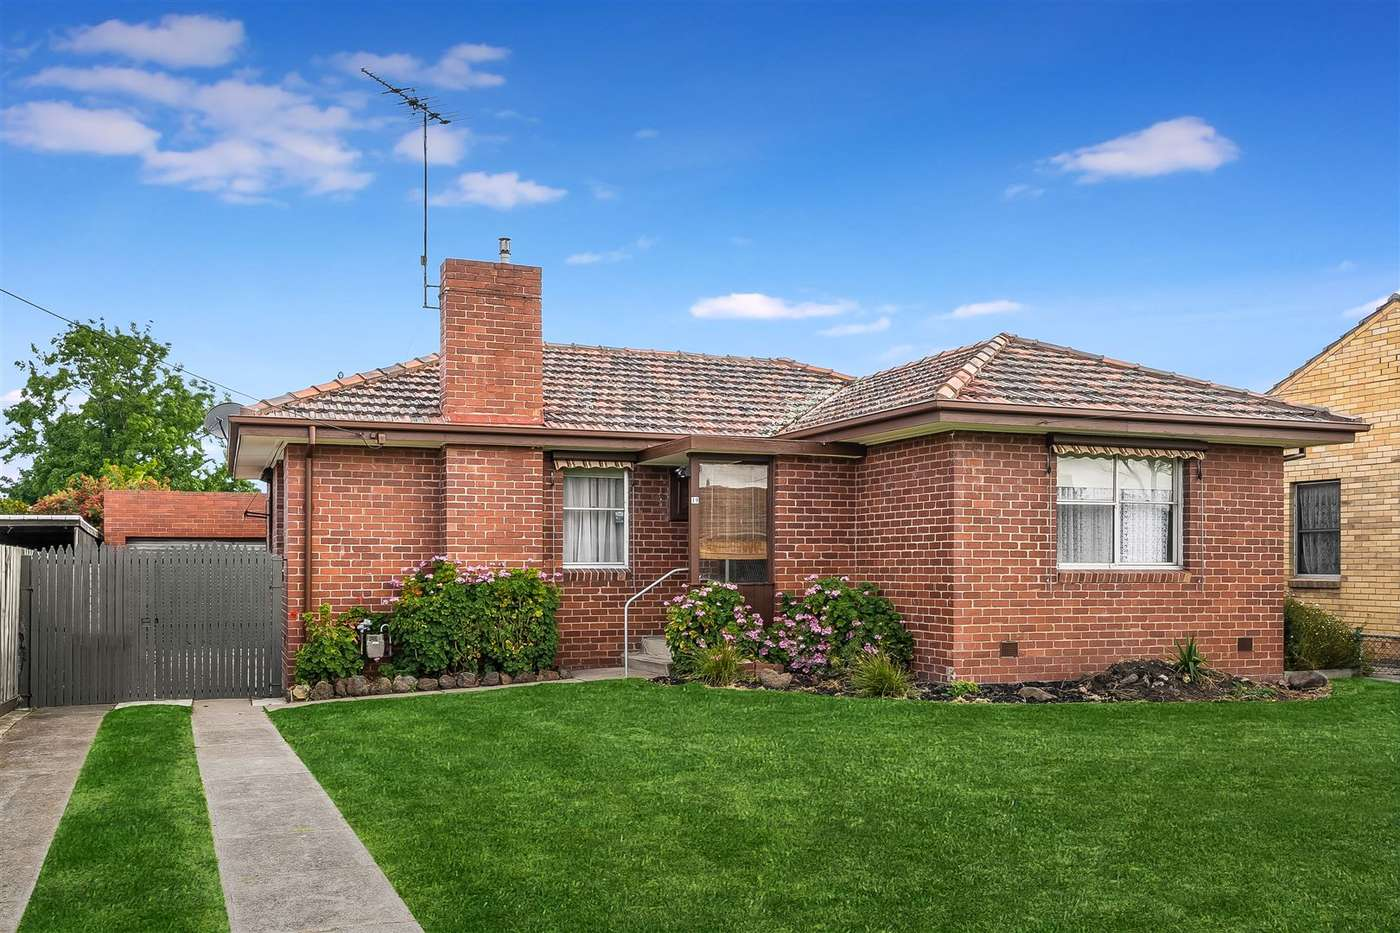 Main view of Homely house listing, 19 Quebec Avenue, Corio, VIC 3214